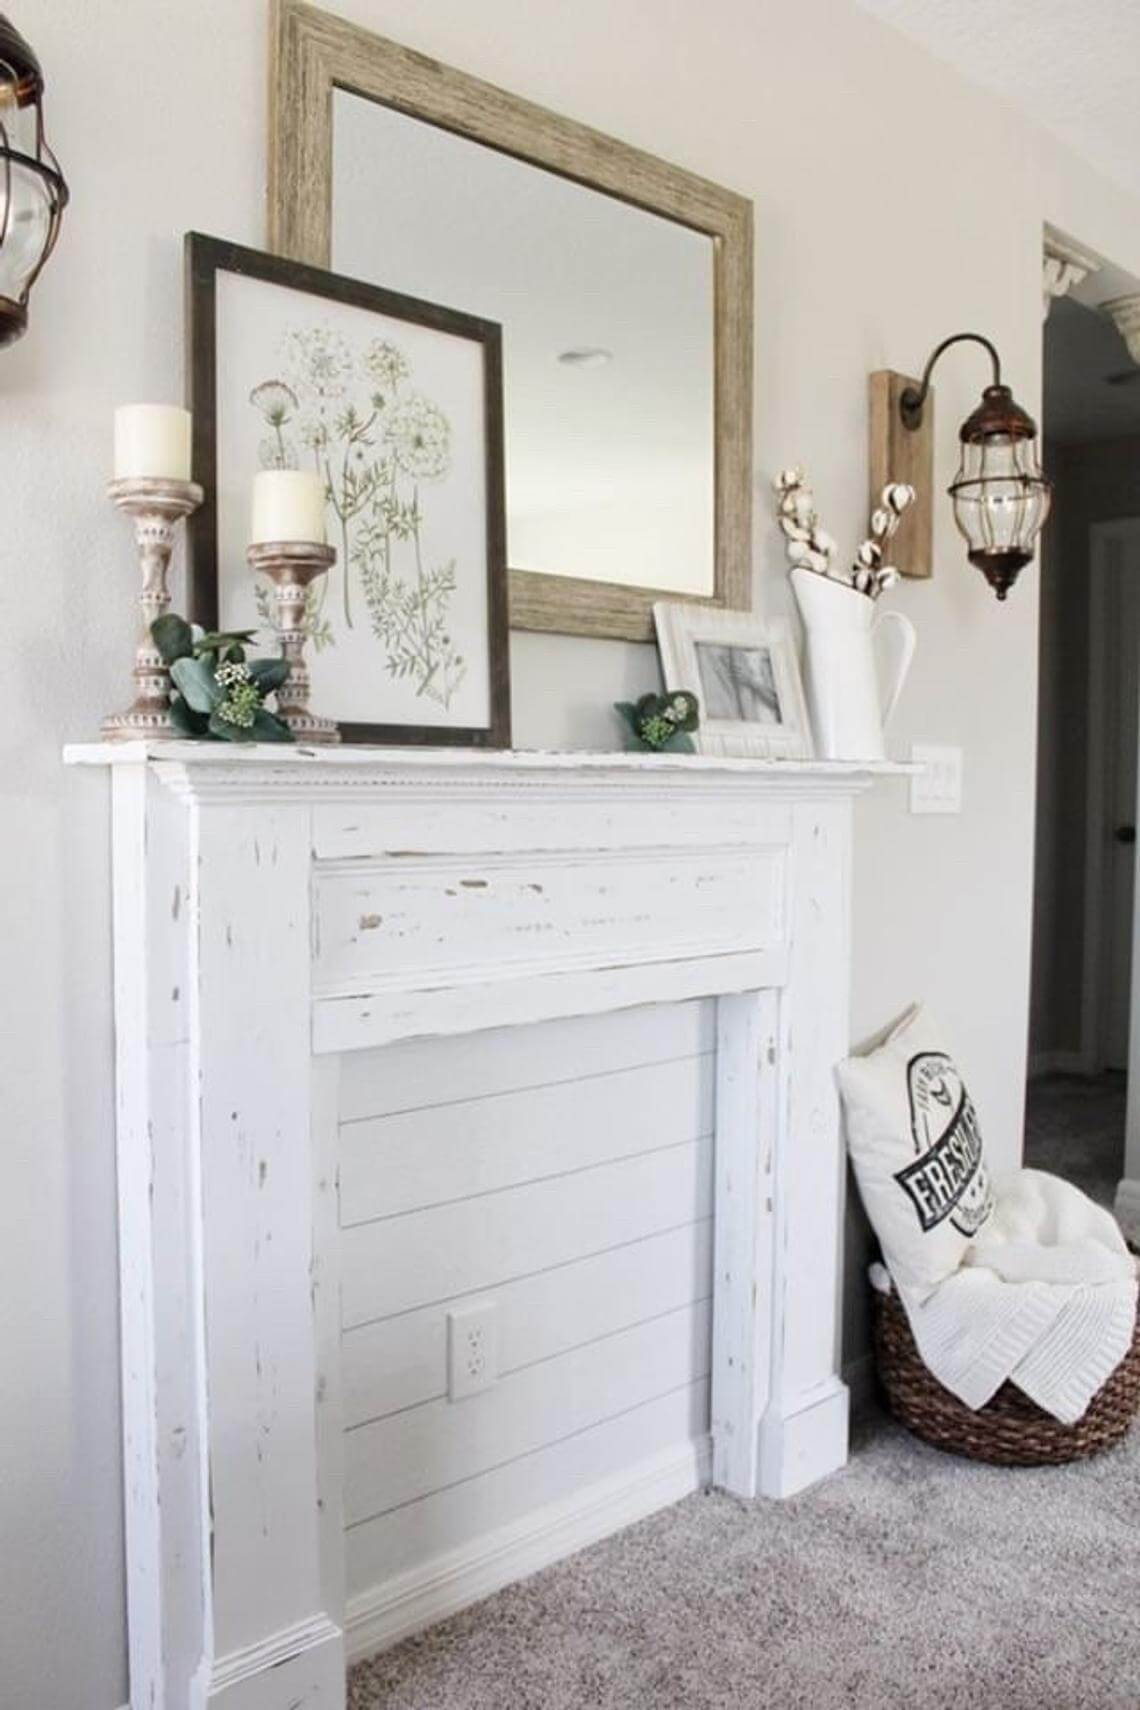 Decorative and Dreamy White Hearth with Shiplap